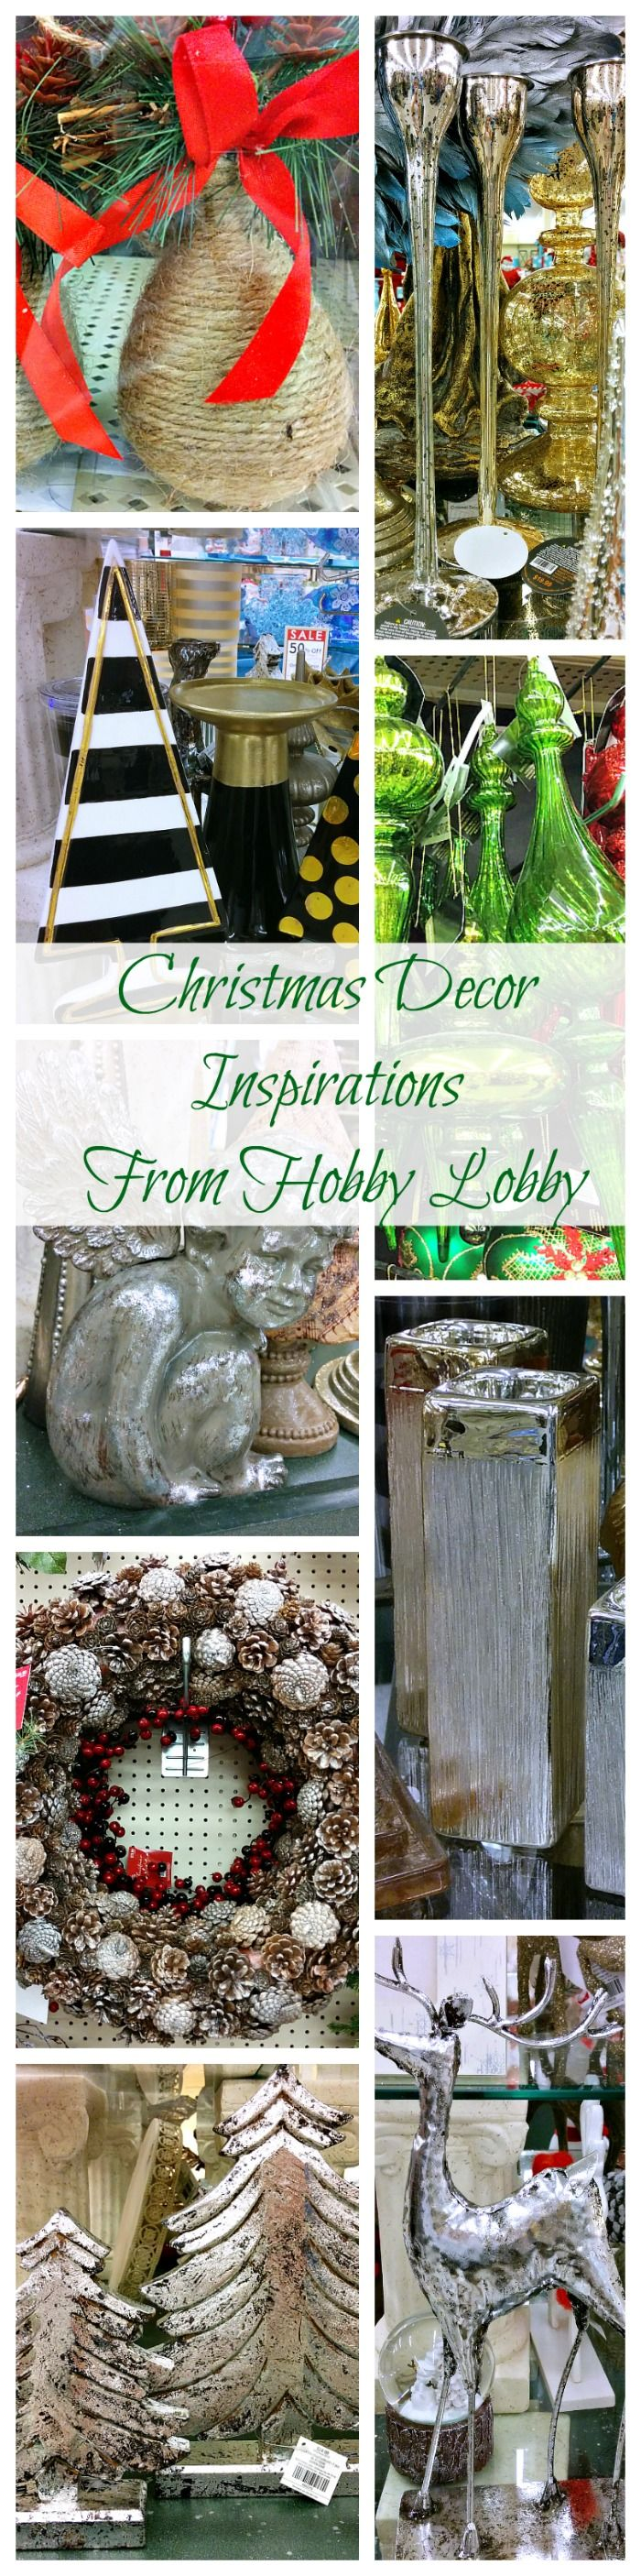 CHRISTMAS DECOR IDEAS & INSPIRATIONS FROM HOBBY LOBBY  So many unique holiday decor items!!! And there's tons more to see!